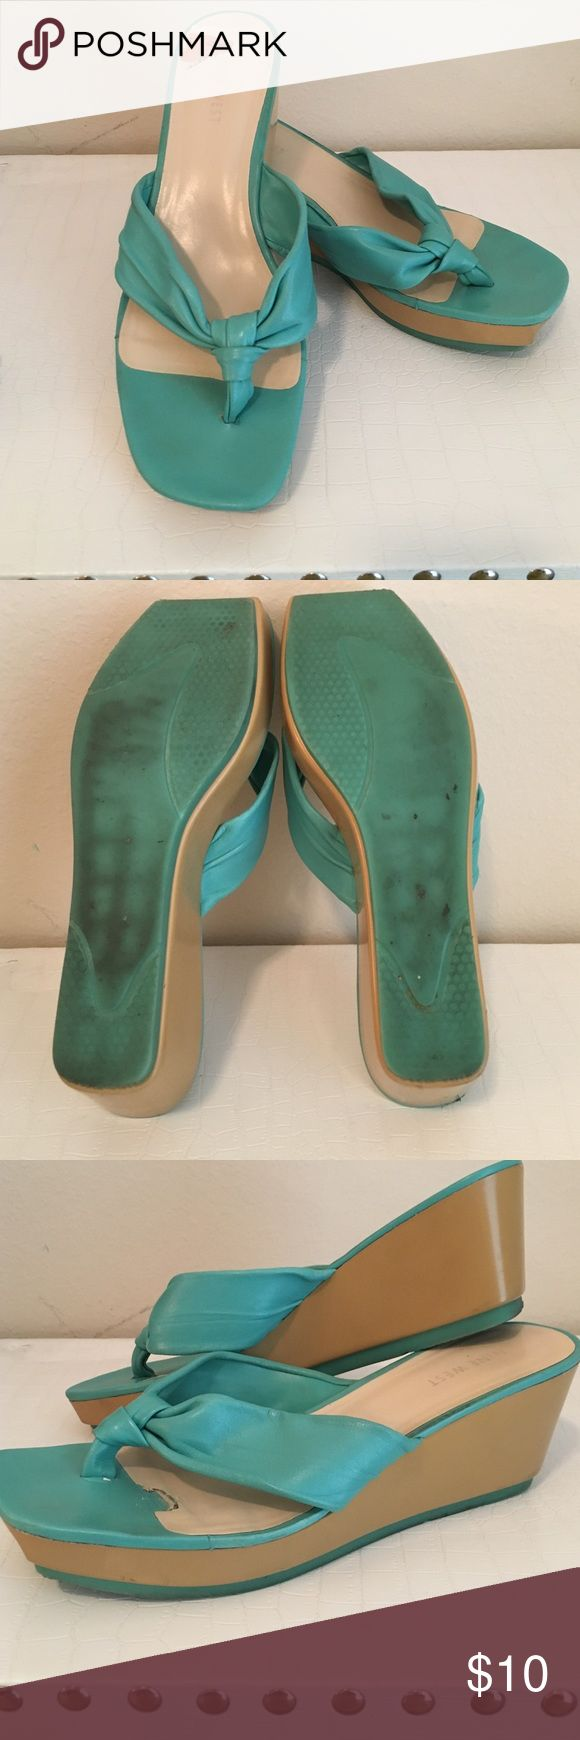 Sandle Leather turquoise wedge sandle Nine West Shoes Wedges